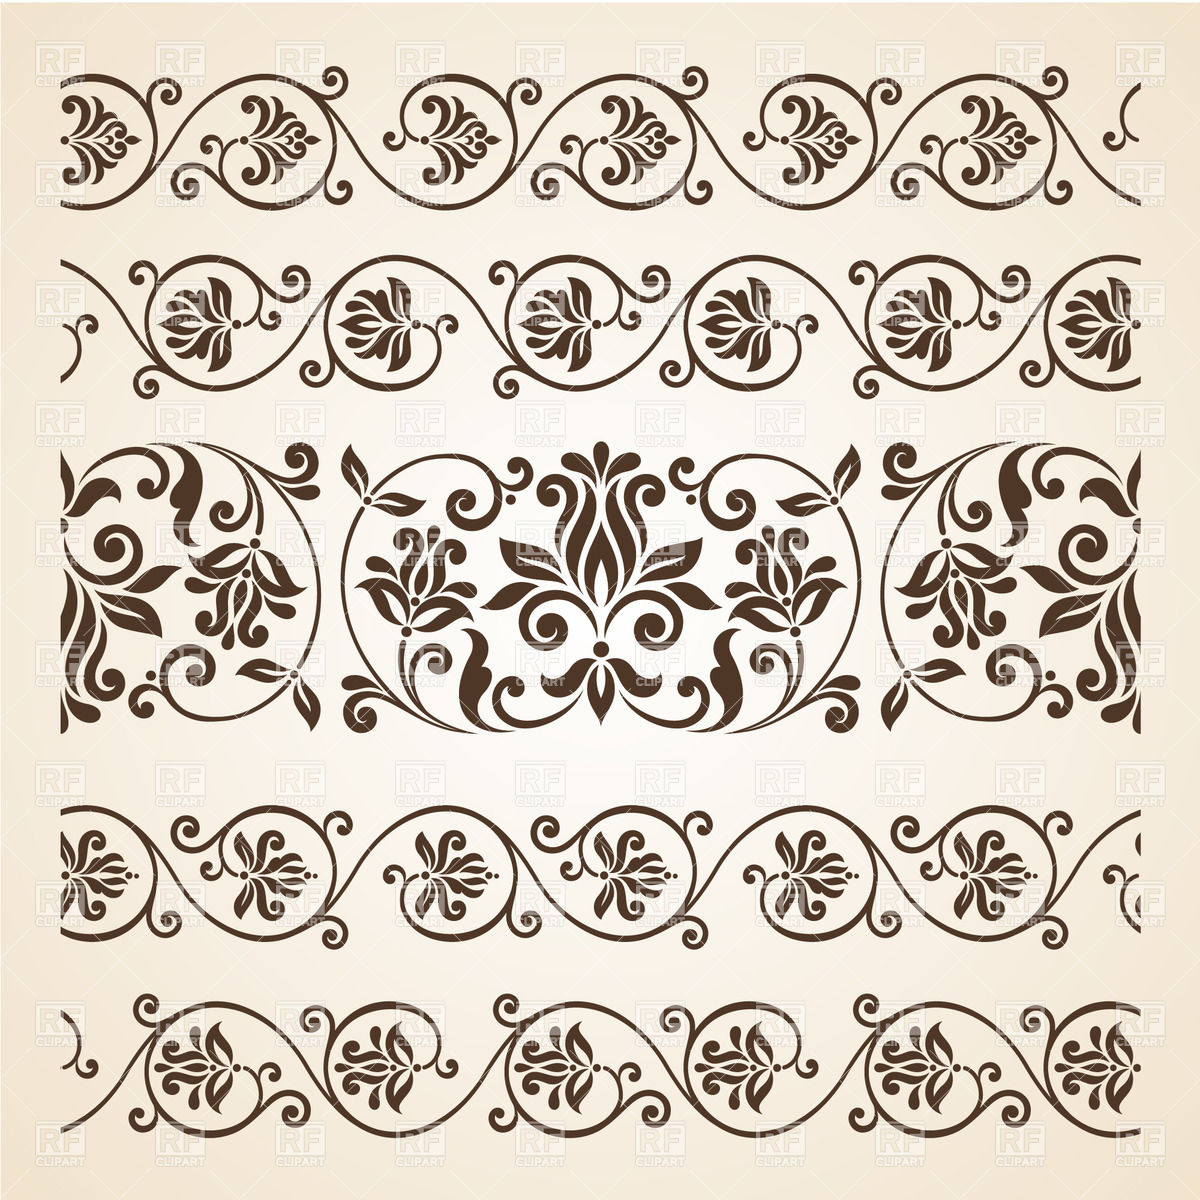 Floral borders free download jpg free stock Collection of vintage floral borders Vector Image #29517 – RFclipart jpg free stock